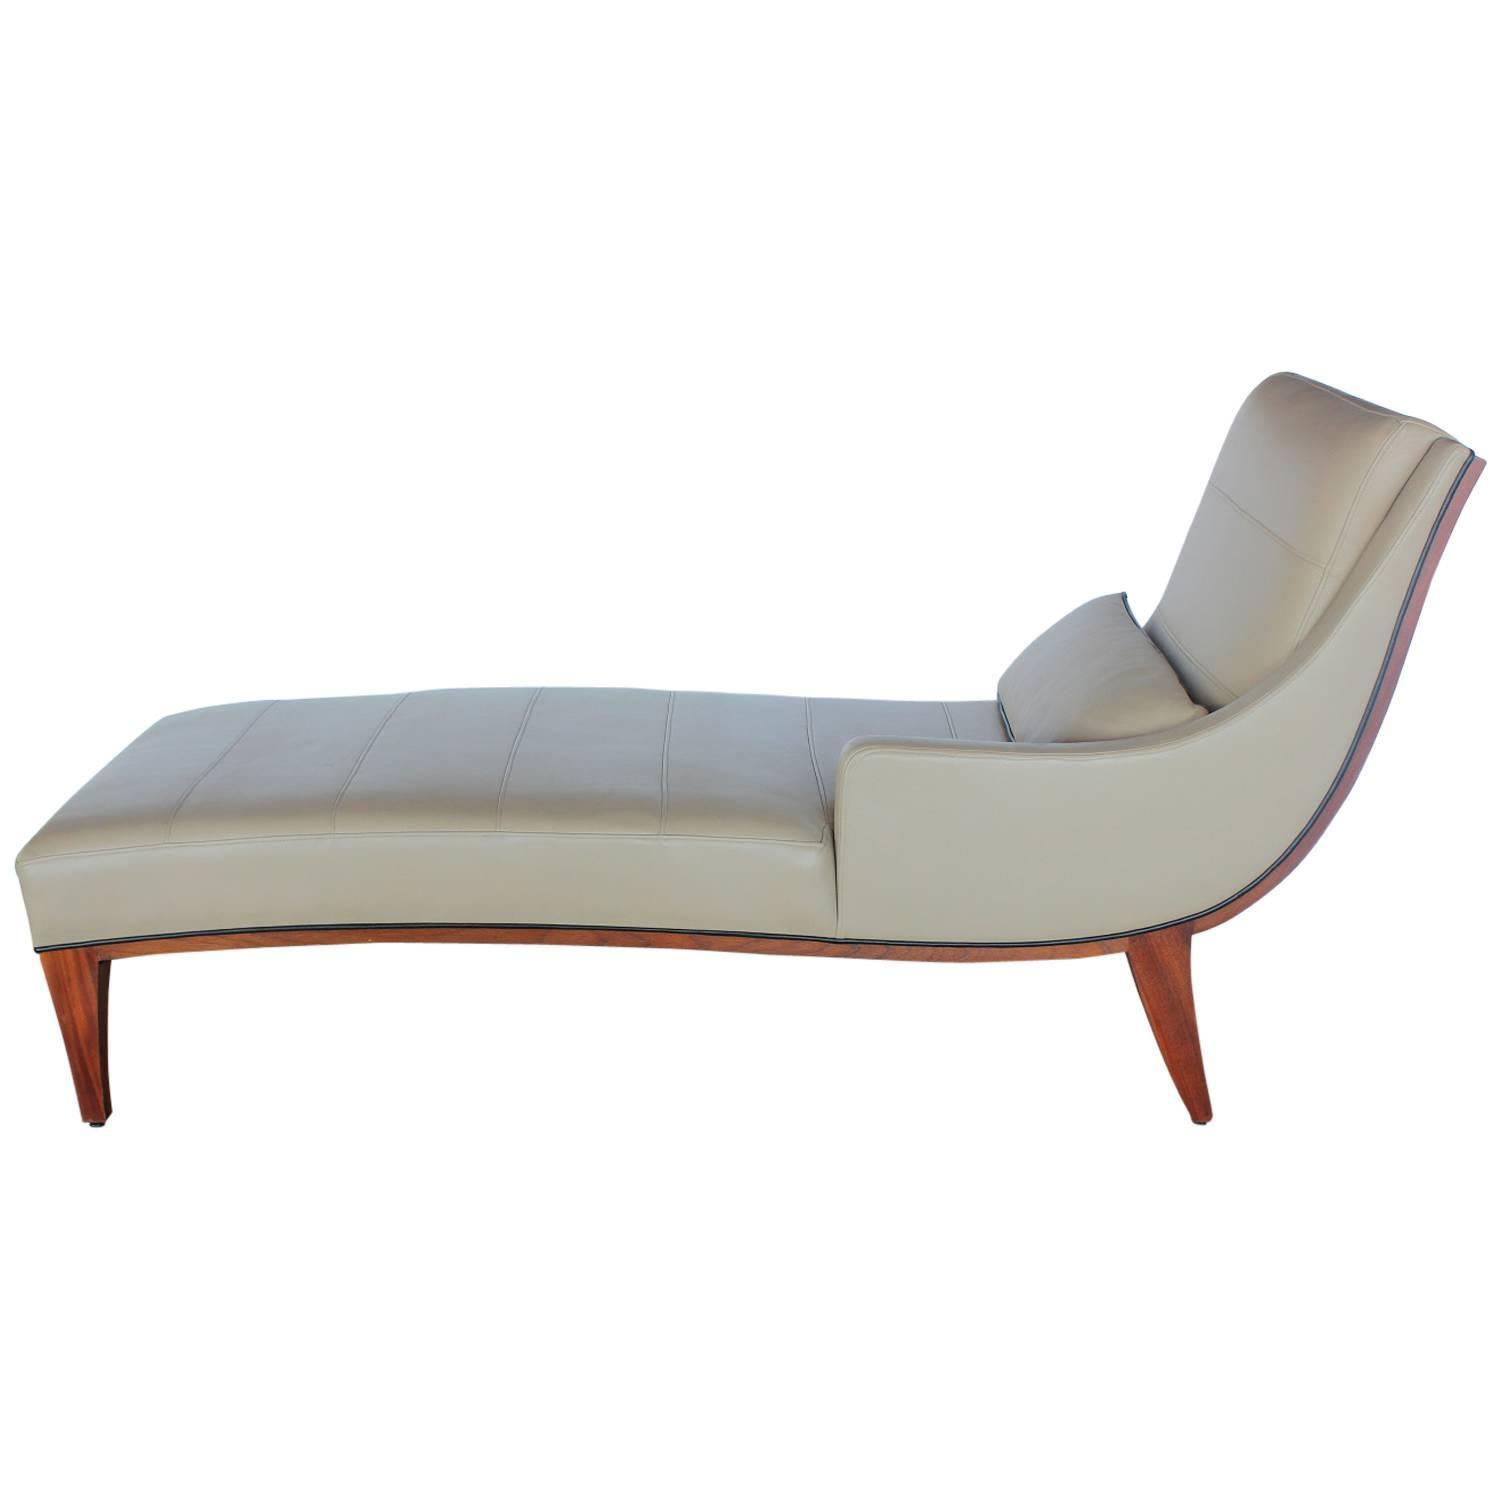 Modern leather chaise lounge by widdicomb for sale at 1stdibs for Chaise leather lounge